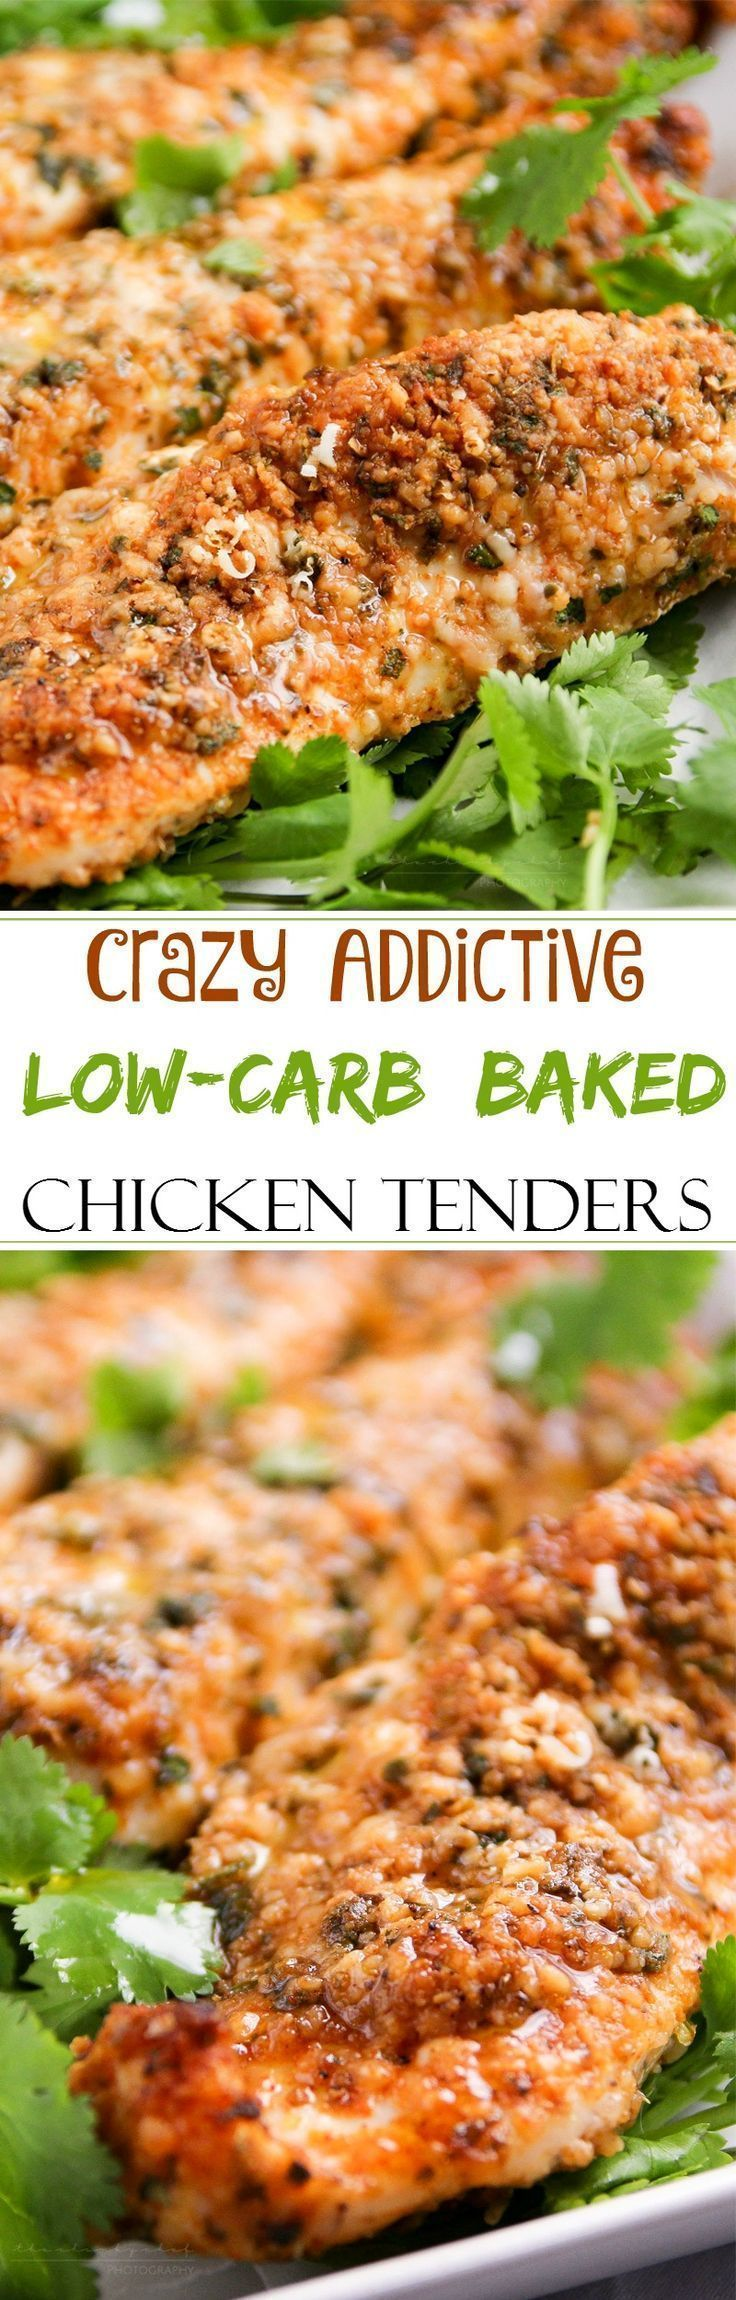 Low Carb Baked Chicken Tenders | These baked chicken tenders are coated in a deliciously savory crust, yet have zero breading, which makes for an awesomely low carb meal! | http://thechunkychef.com